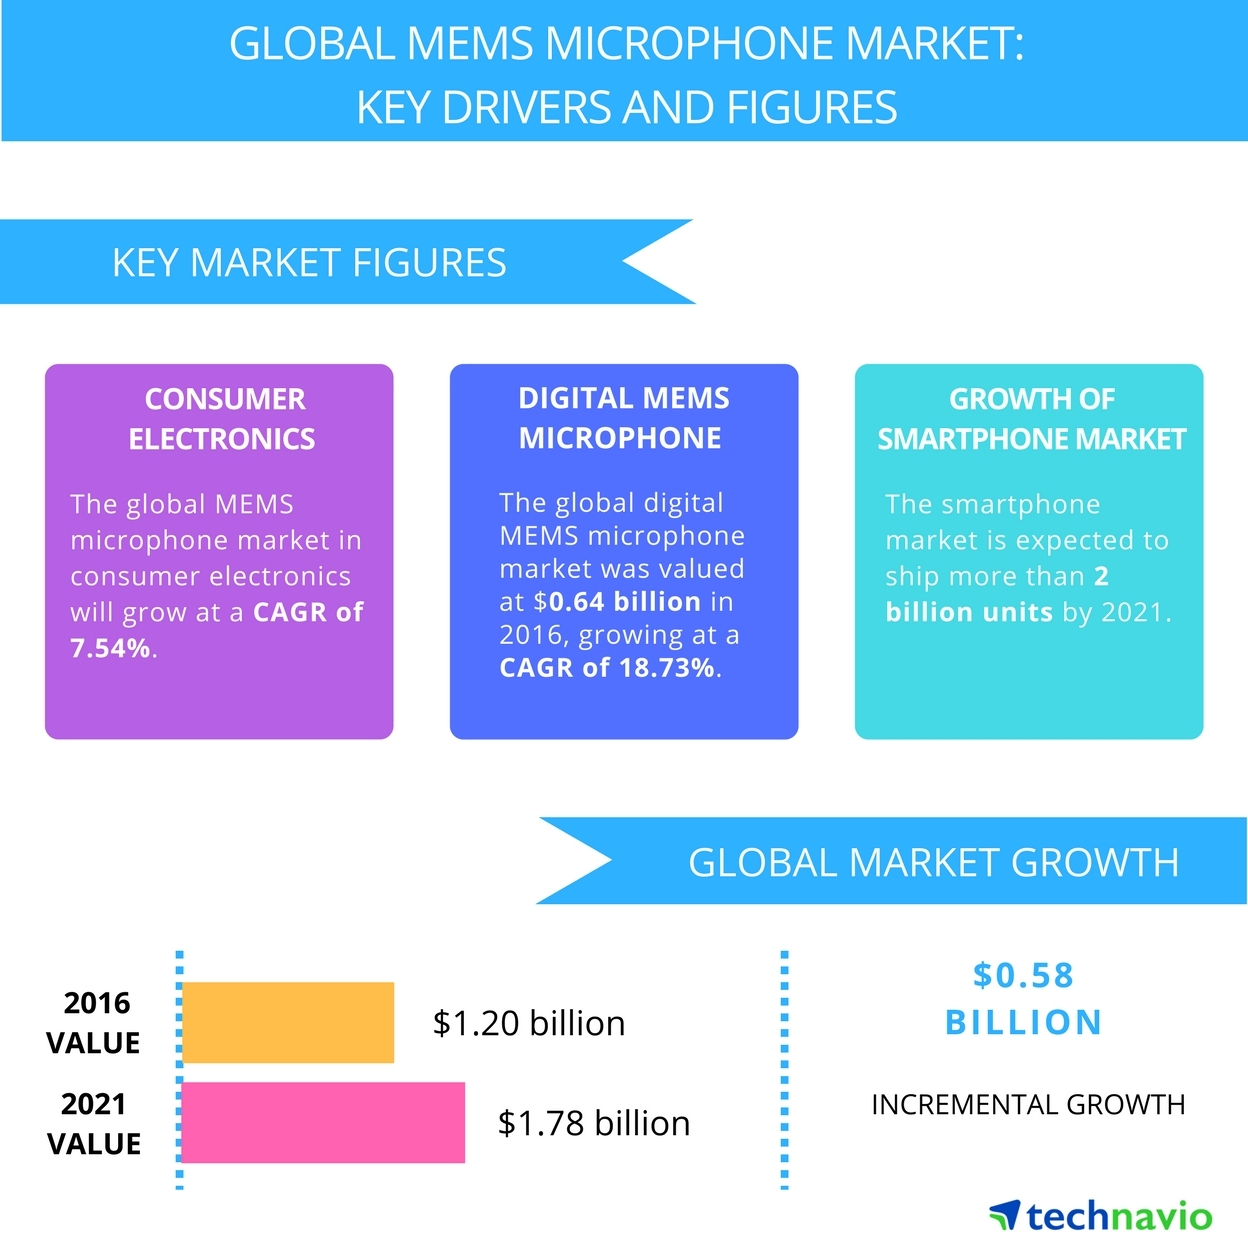 Technavio has published a new report on the global MEMS microphone market from 2017-2021. (Photo: Business Wire)